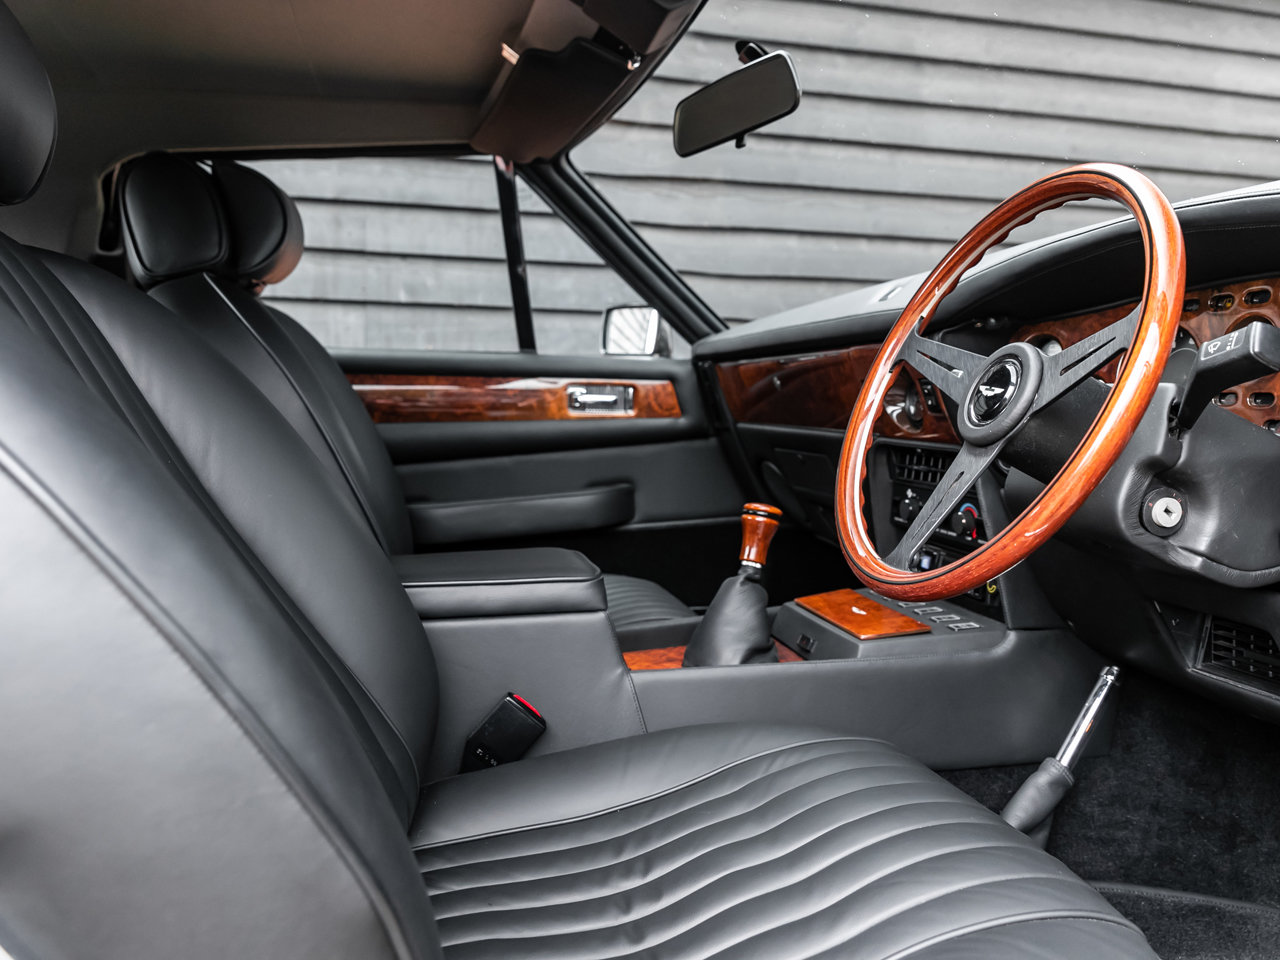 1989 Aston Martin V8 Vantage Volante PoW Adapted For Sale (picture 6 of 6)